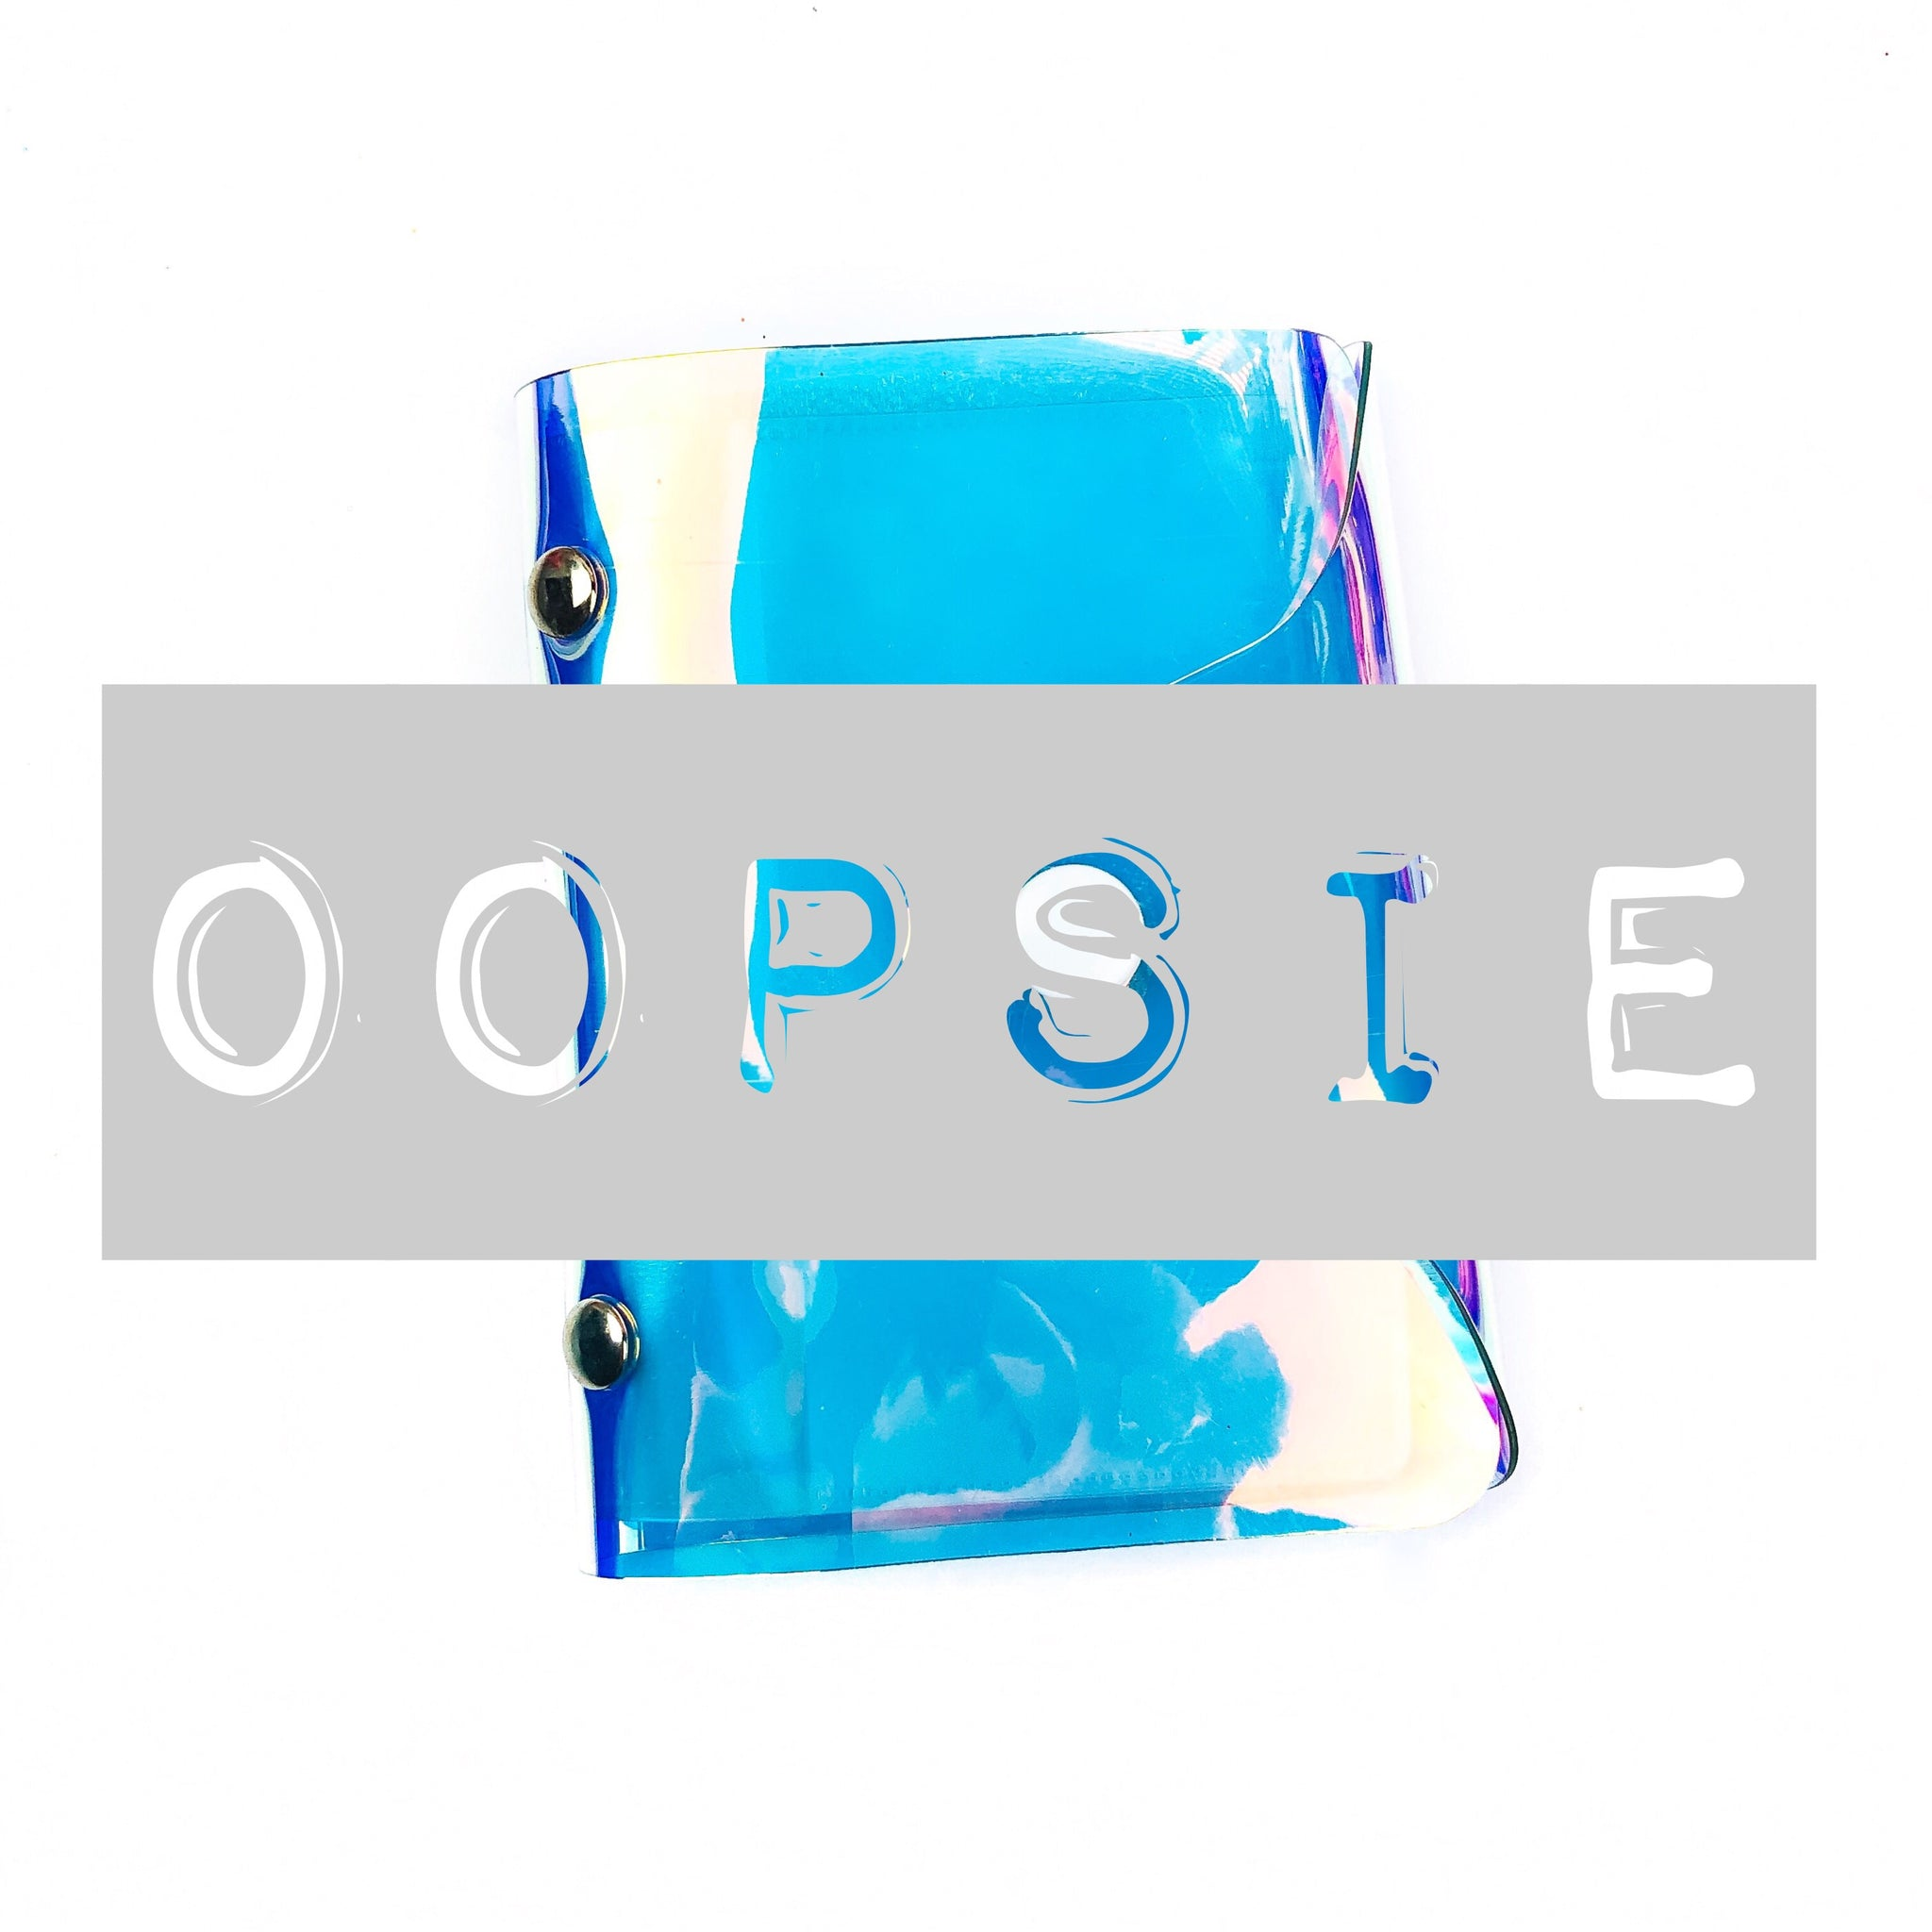 Oopsie Iridescent Washi Wallet